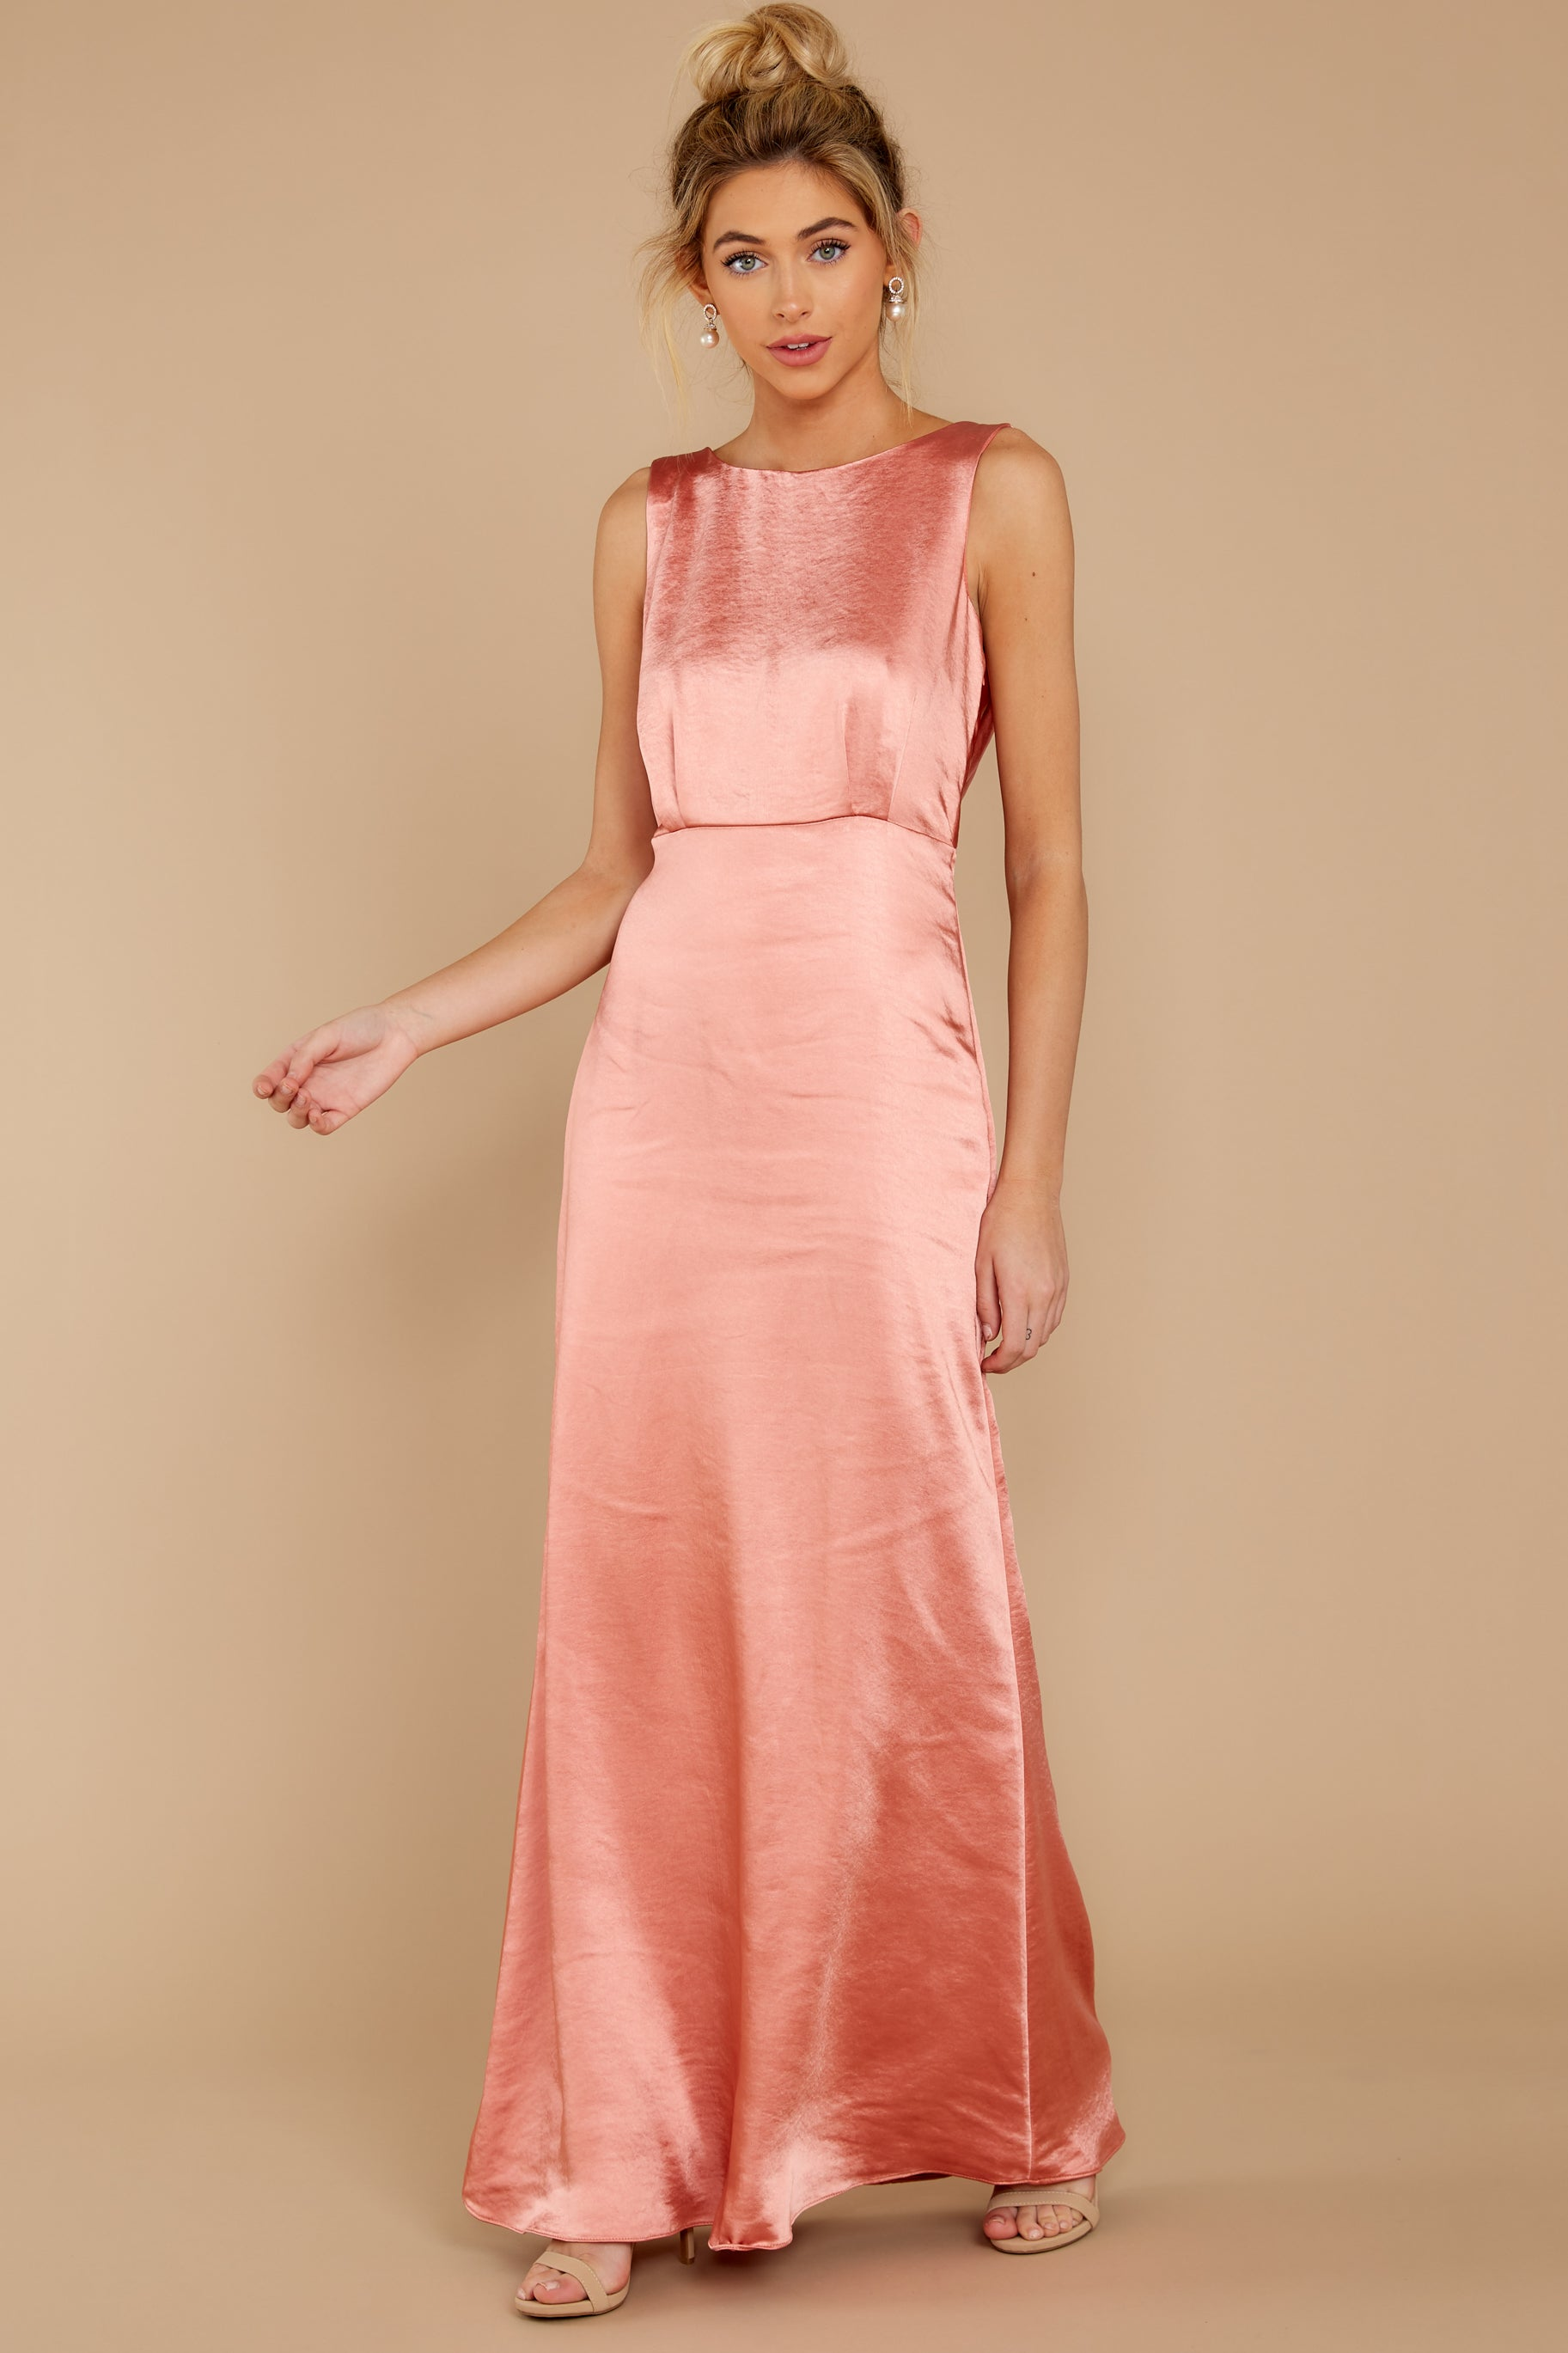 Vintage Evening Dresses and Formal Evening Gowns New Era Rose Pink Maxi Dress $62.00 AT vintagedancer.com